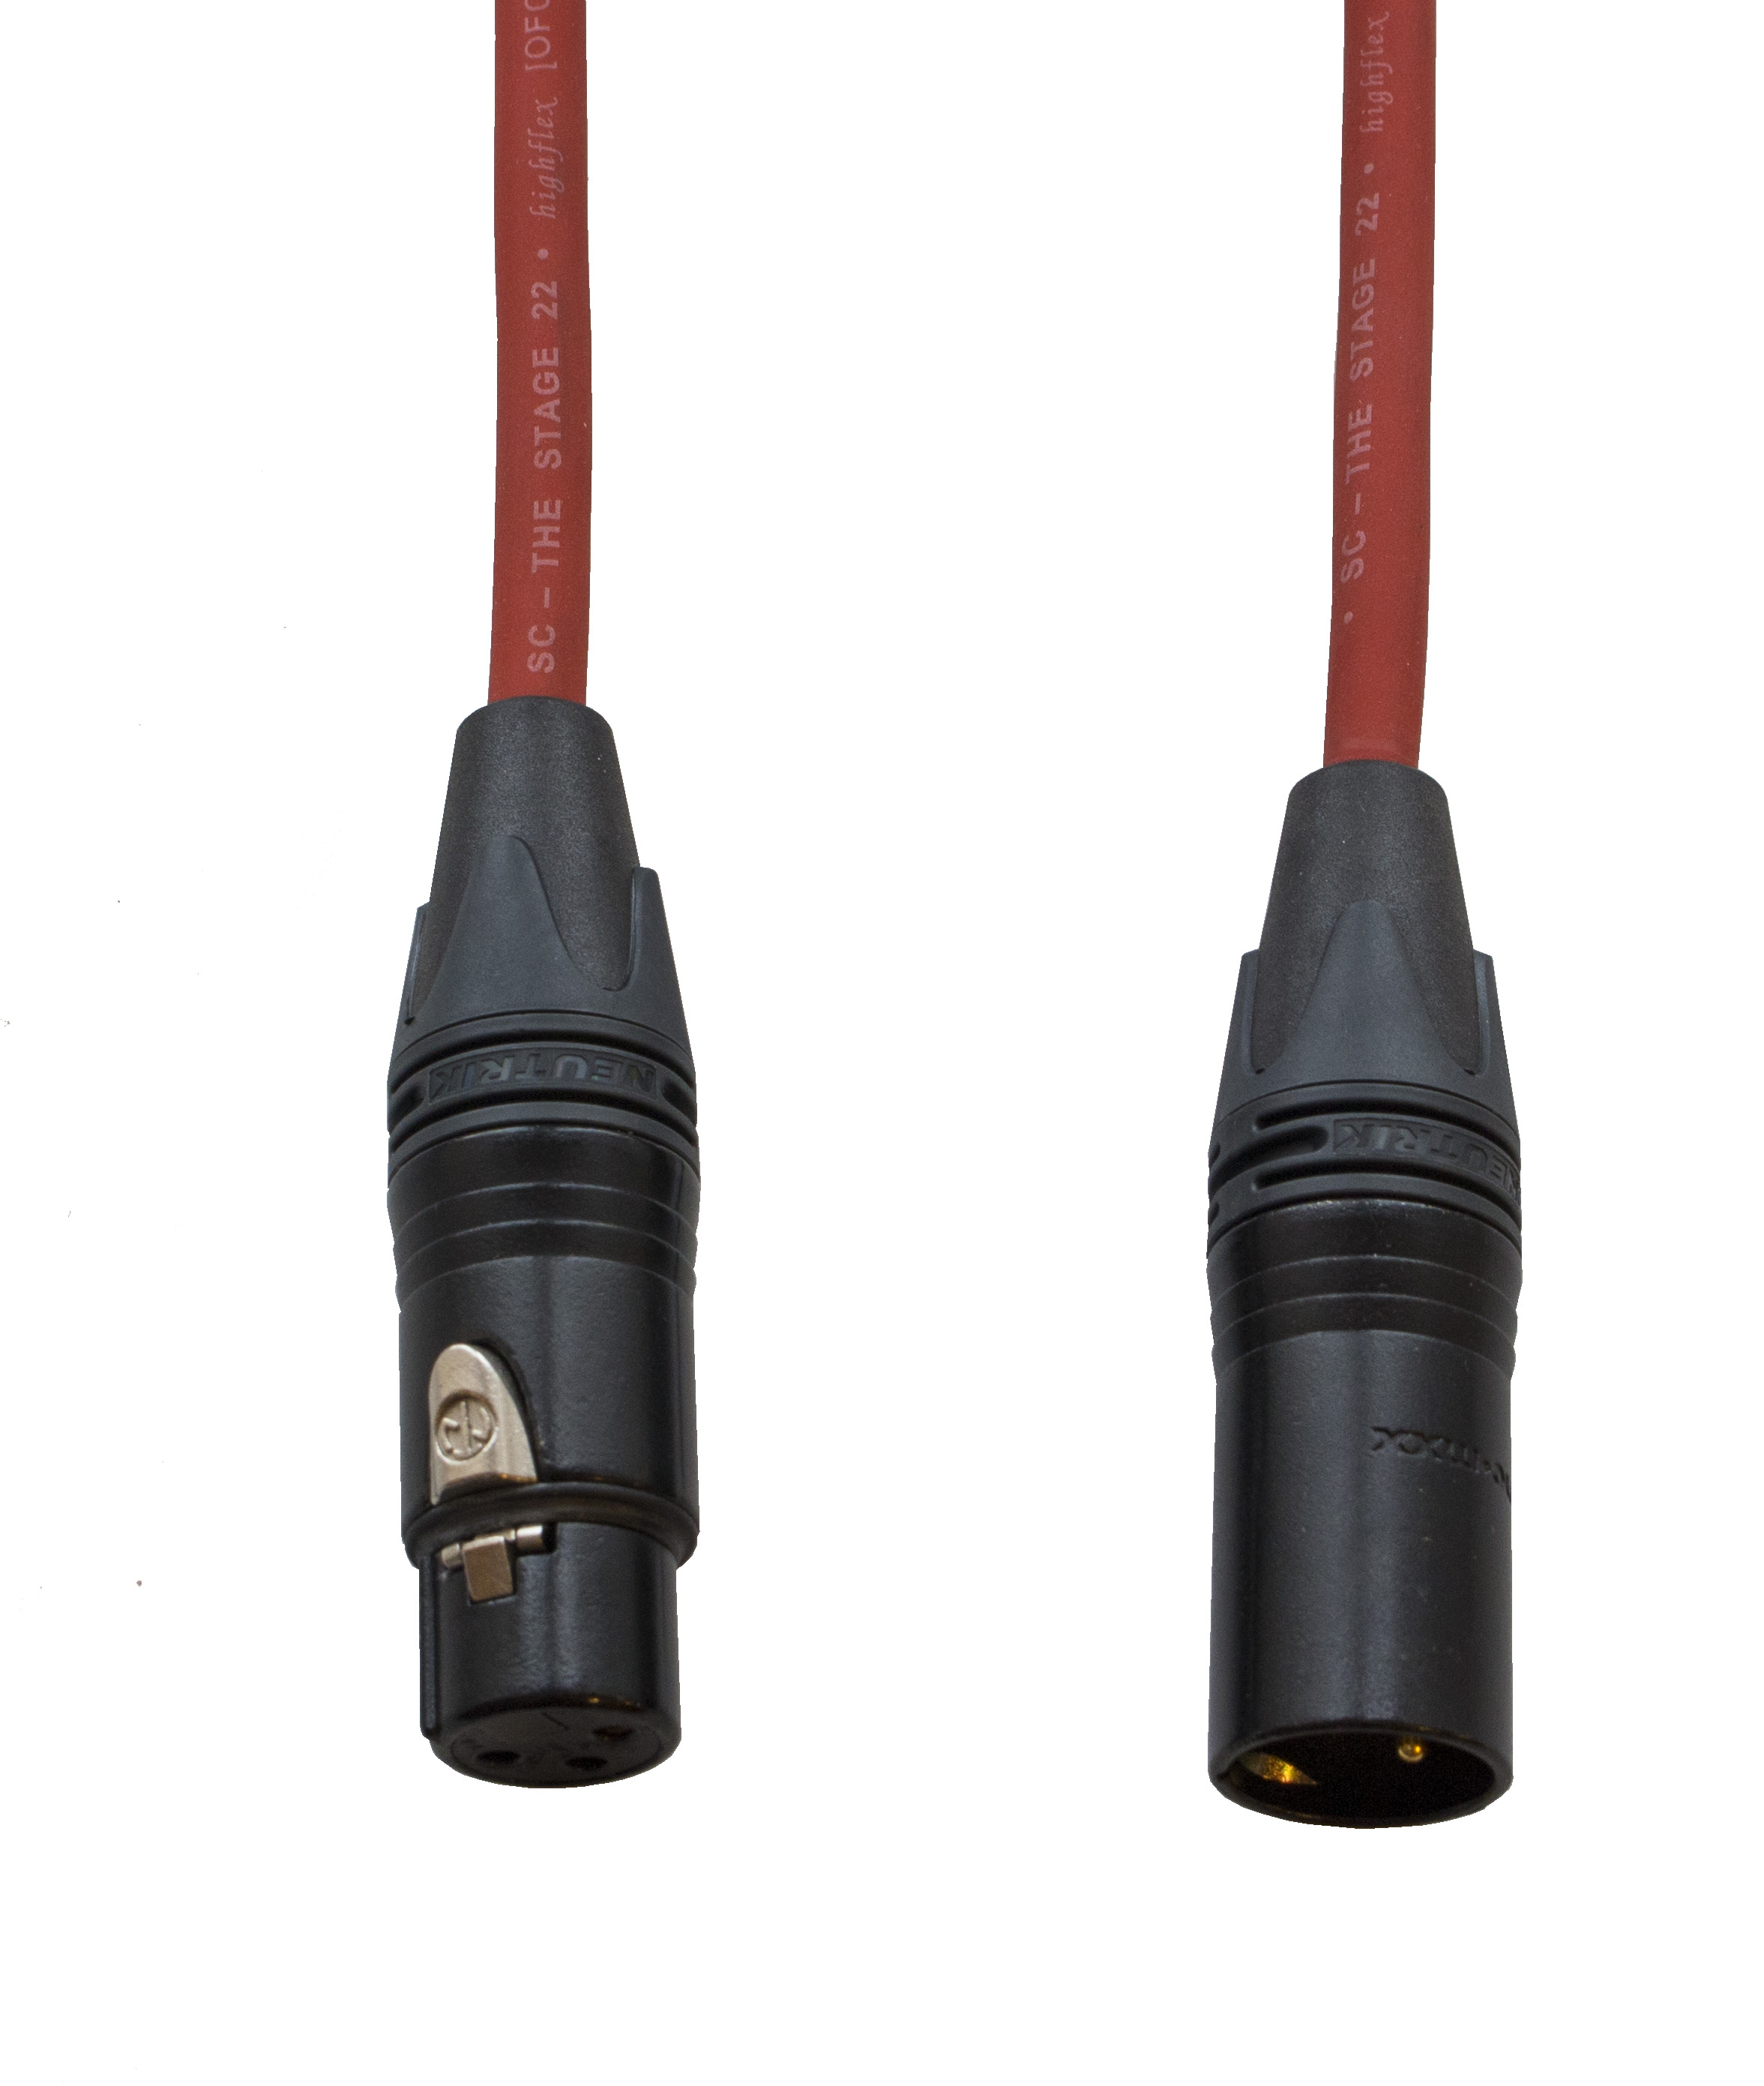 Audiokabel XLR konektor Neutrik poz. male/female  40 m, Sommer červený